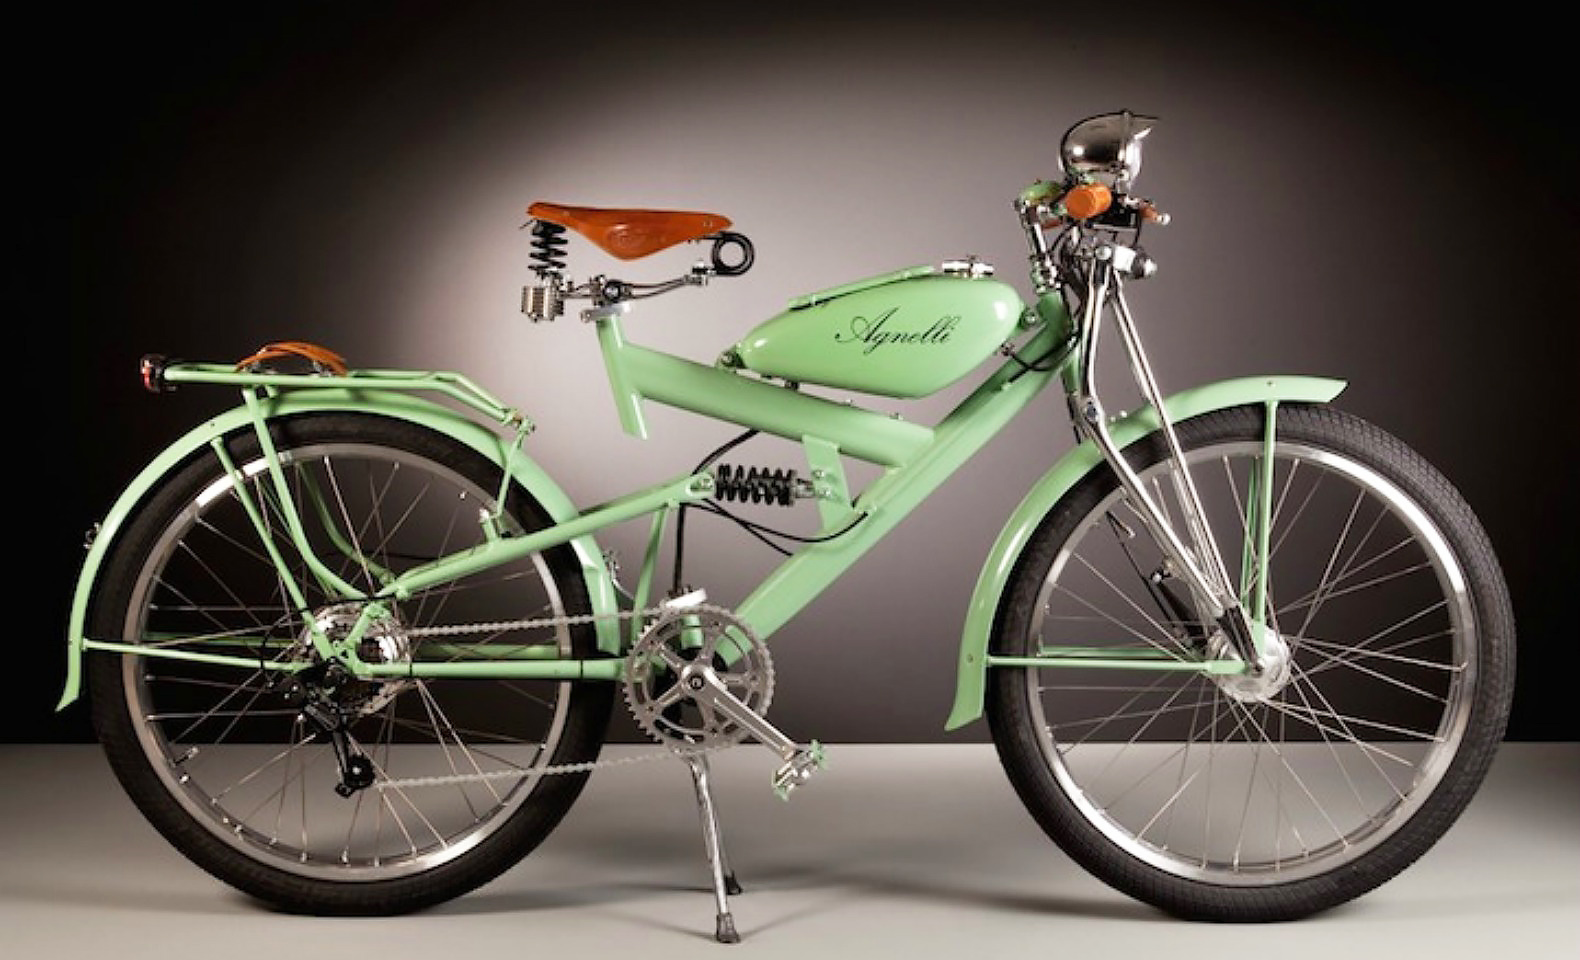 Vintage electric bikes from Italy out-hip even the coolest ride